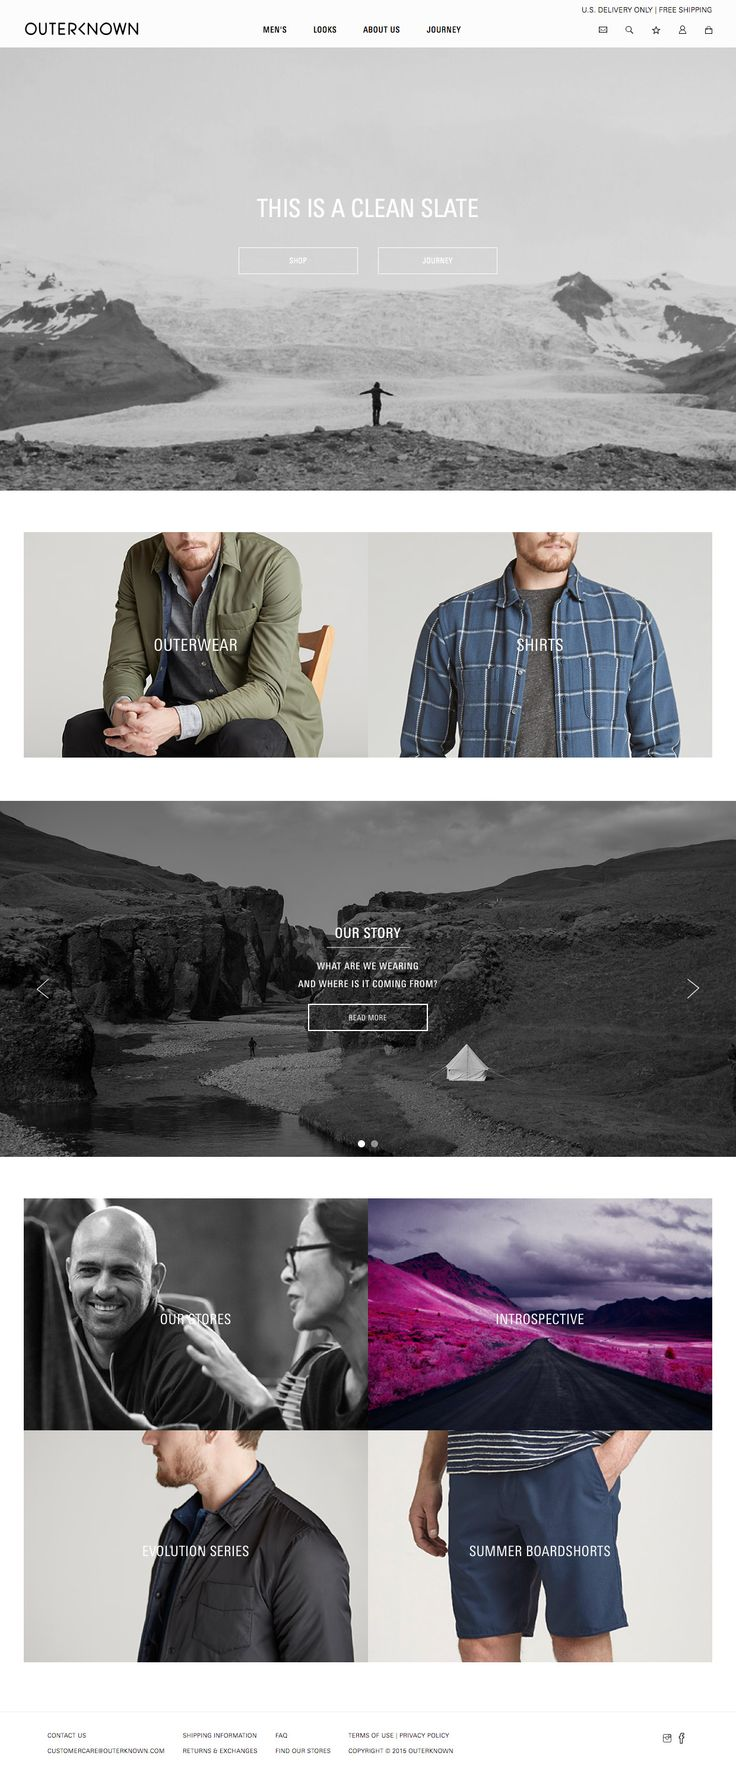 Outerknown Desktop Home Page Kelly Slater's new sustainable fashion brand Outerknown has finally launched. Their eCommerce website is very nice indeed, one of the Cleanest examples of eCommerce design out there.  - http://www.cartrepublic.com/gallery/2015/07/outerknown-desktop-home-page/